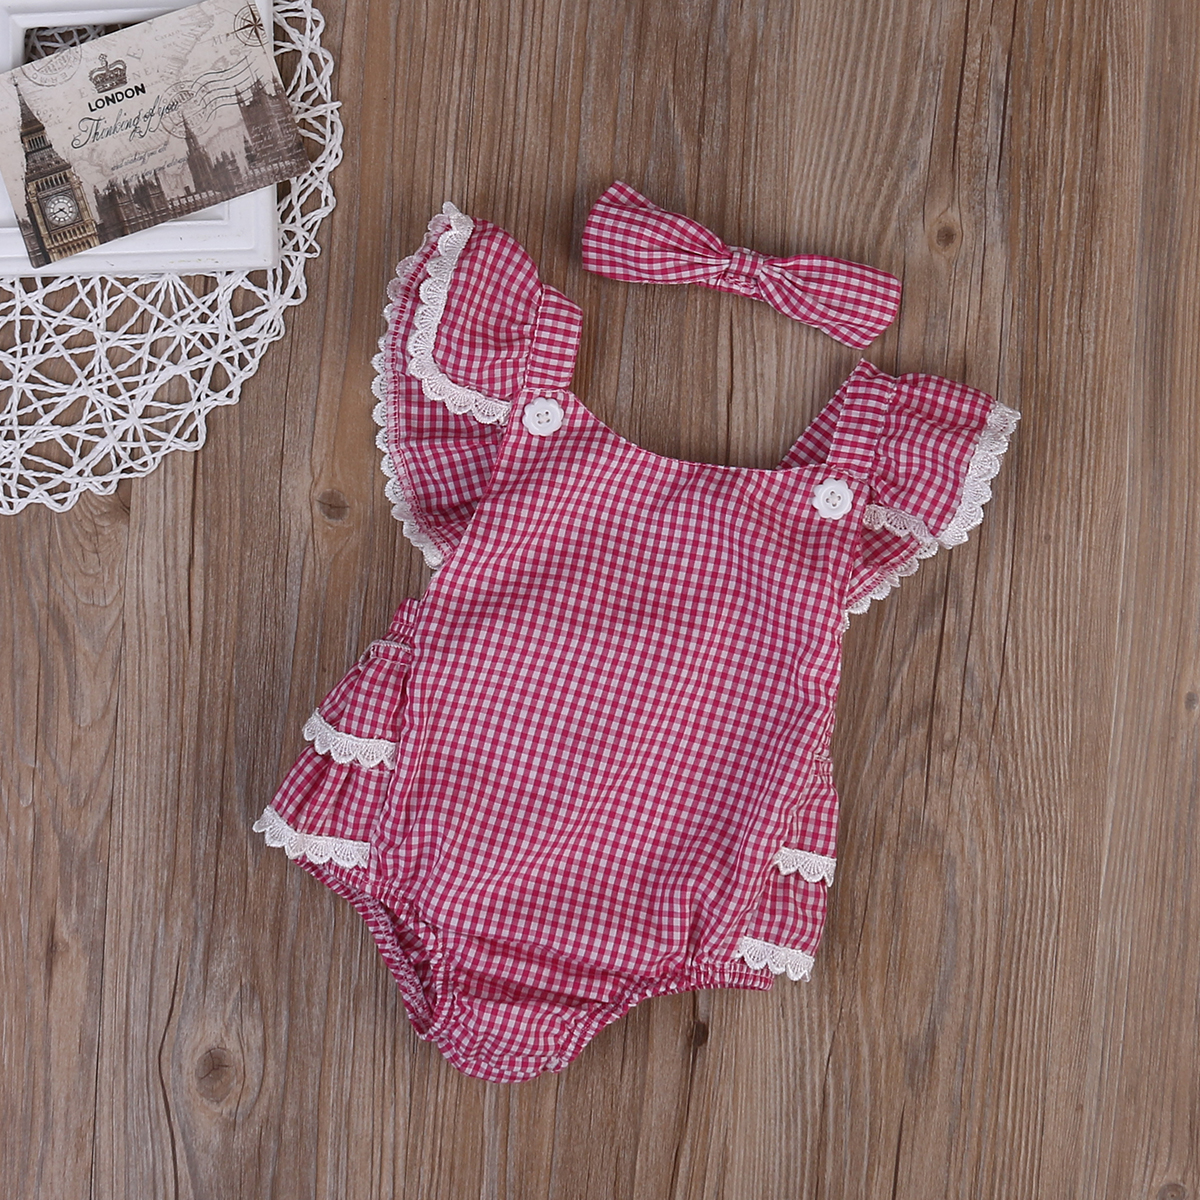 2pcs Baby Set Cute Infant Baby Girls Clothes Summer Flying Sleevless Lace Red Plaid Floral Romper Jumpsuit+Headband Outfits Set toddler baby girls romper jumpsuit playsuit infant headband clothes outfits set sleeve clothing children autumn summer